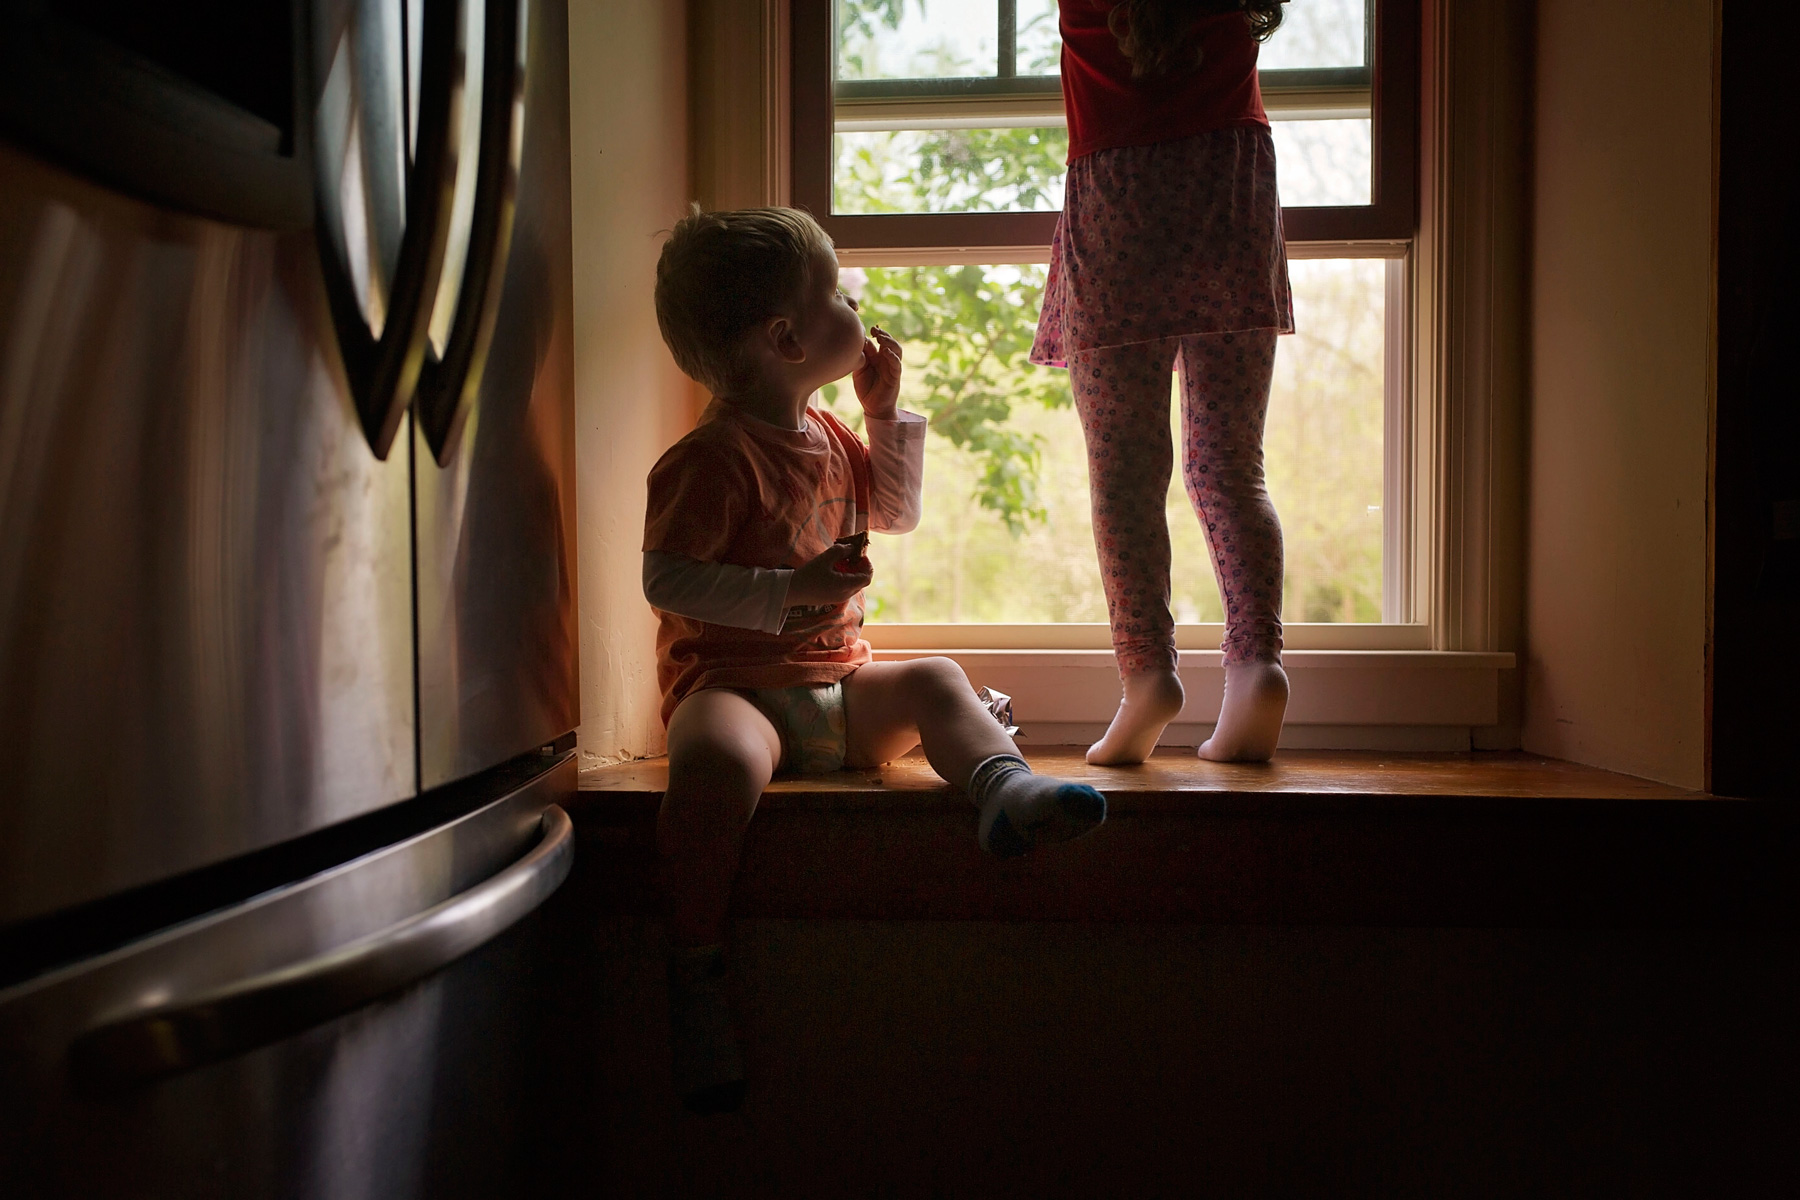 little girl closes window while little brother looks up at her